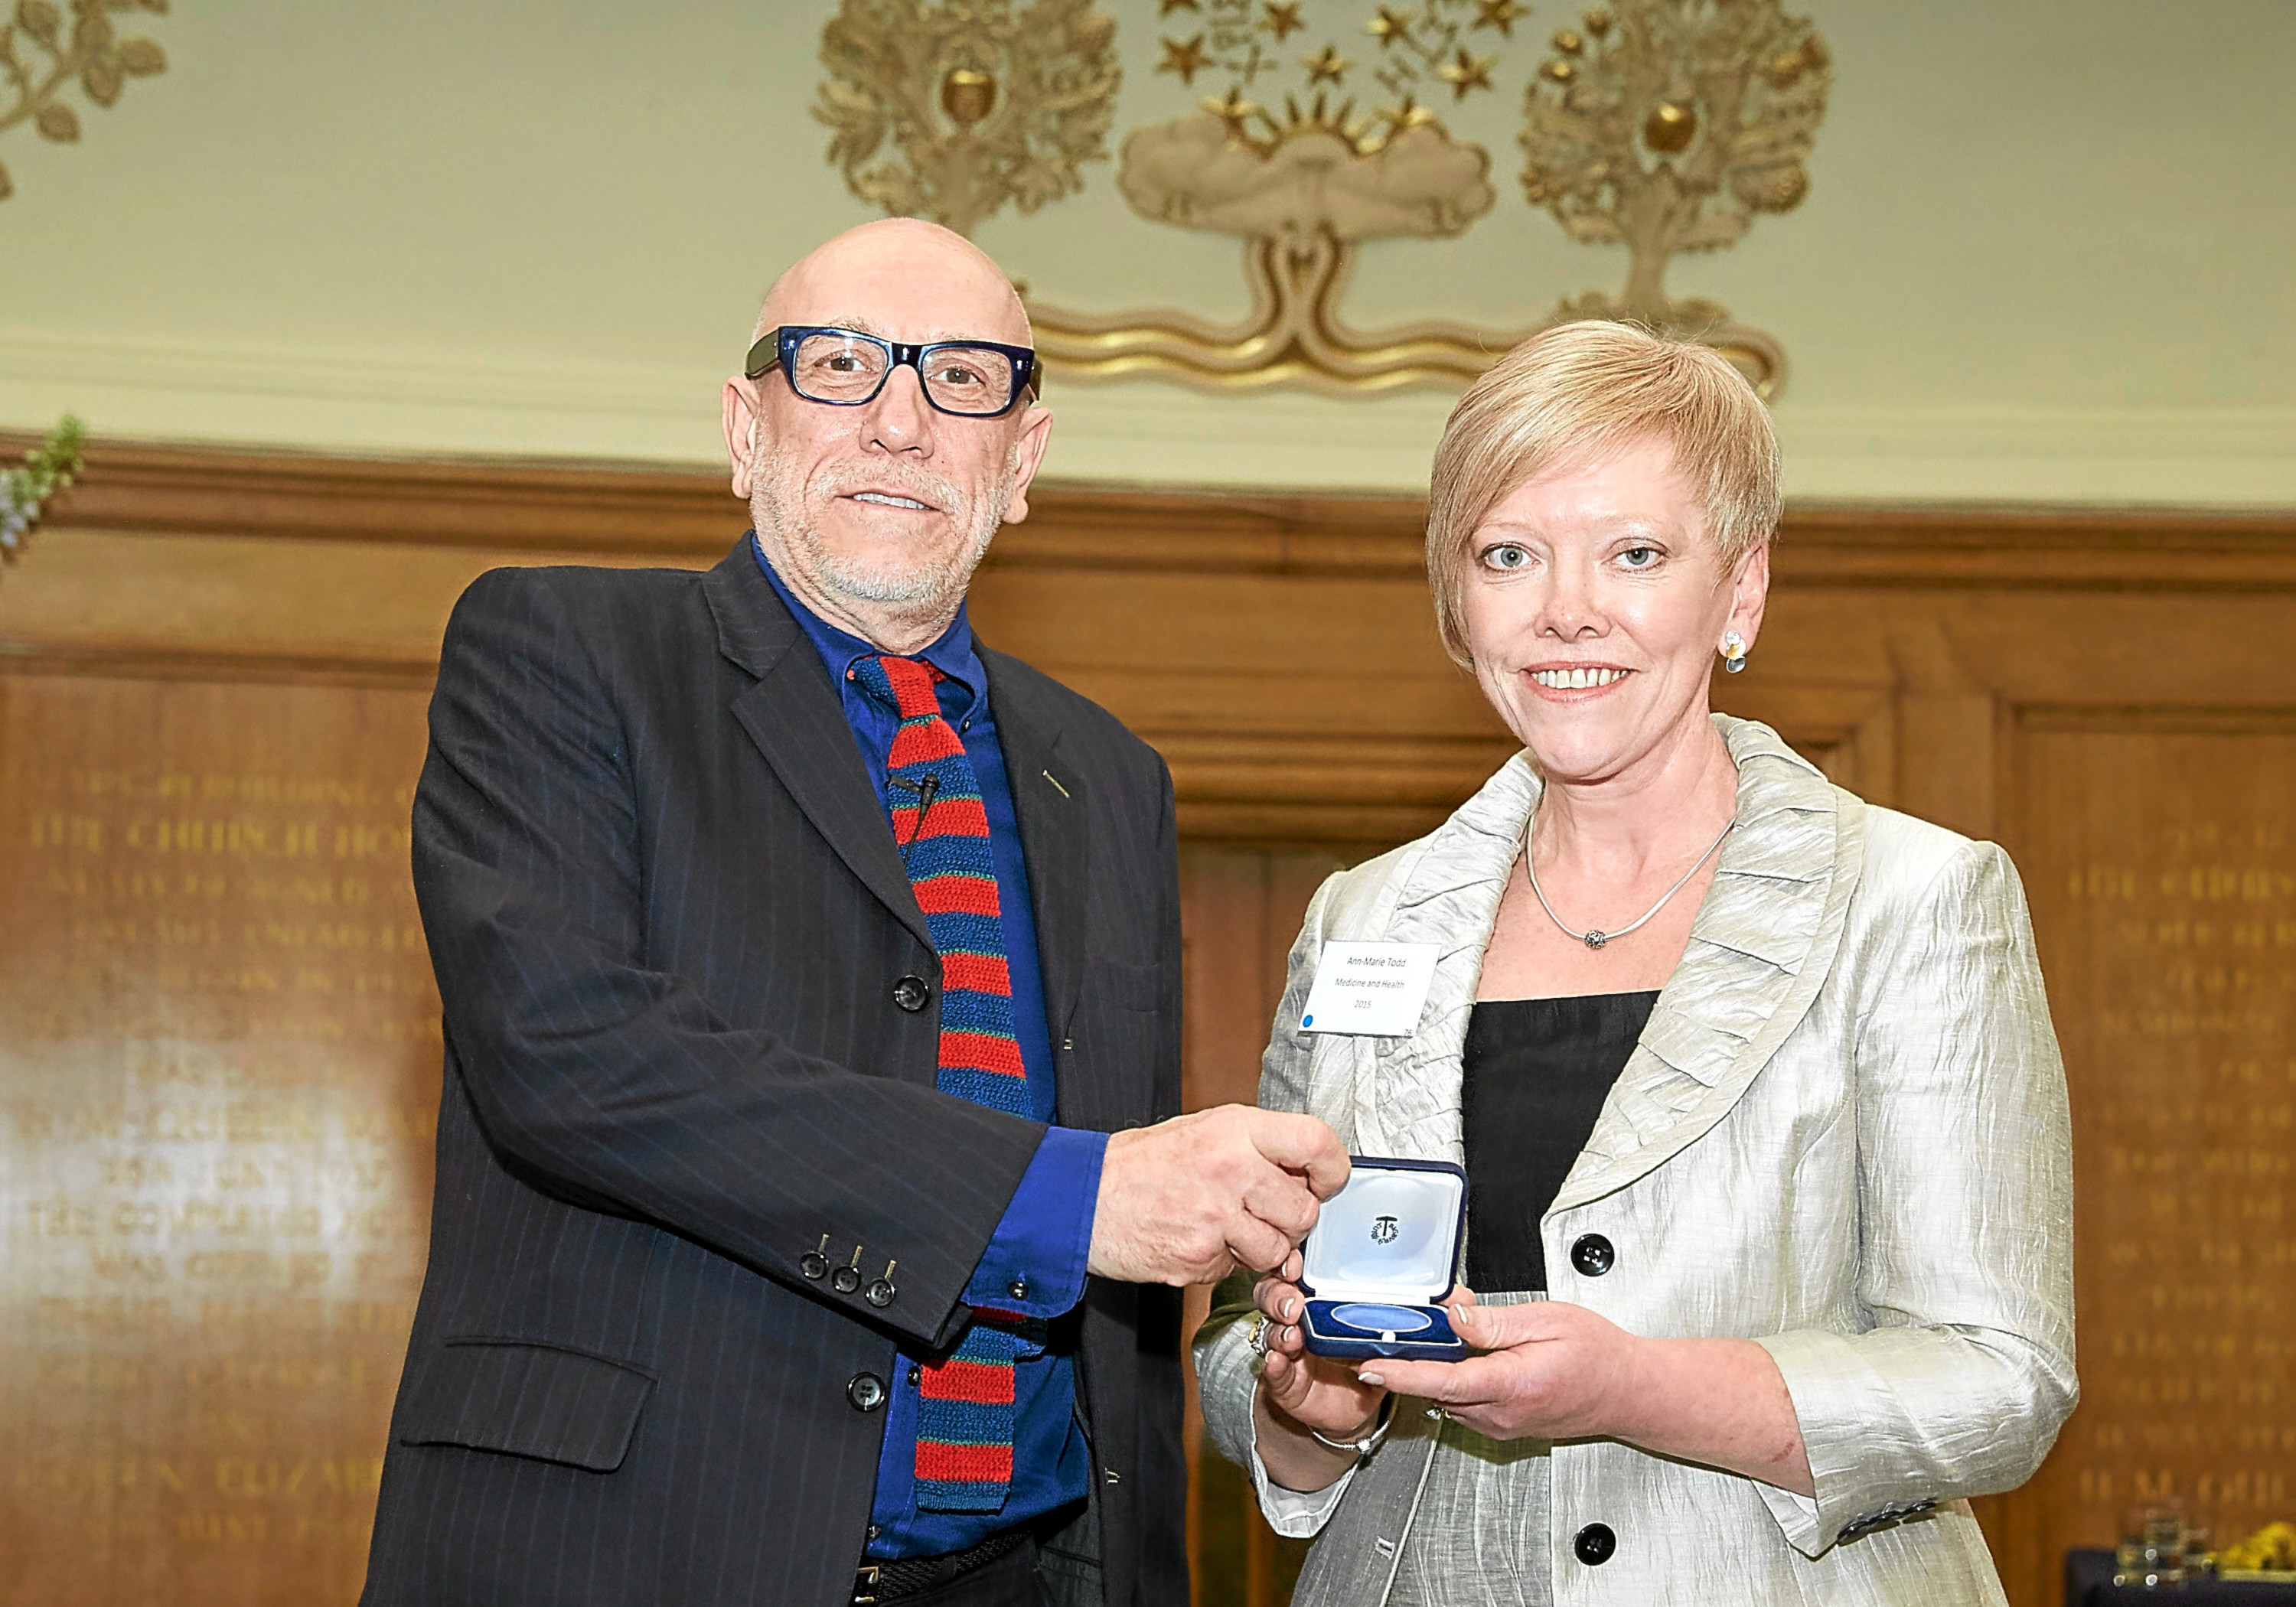 Dr Ann-Marie Todd was presented with a specially-designed Churchill medallion to mark the completion of her Fellowship. Dr Todd was awarded the Fellowship to research educational opportunities for carers and to review current practice within palliative medicine, both in community settings and hospitals.  The Winston Churchill Memorial Trust is the UKs national memorial to Sir Winston Churchill and each year the Trust awards Travelling Fellowship grants to UK citizens in a range of fields to enable them to carry out research projects overseas.   ©Clive Totman 2016 ALL RIGHTS RESERVED. It is the sole responsibility of the distributor/client/user/publisher to seek all permissions/releases BEFORE USE.  Moral rights asserted: Must credit / byline photographer